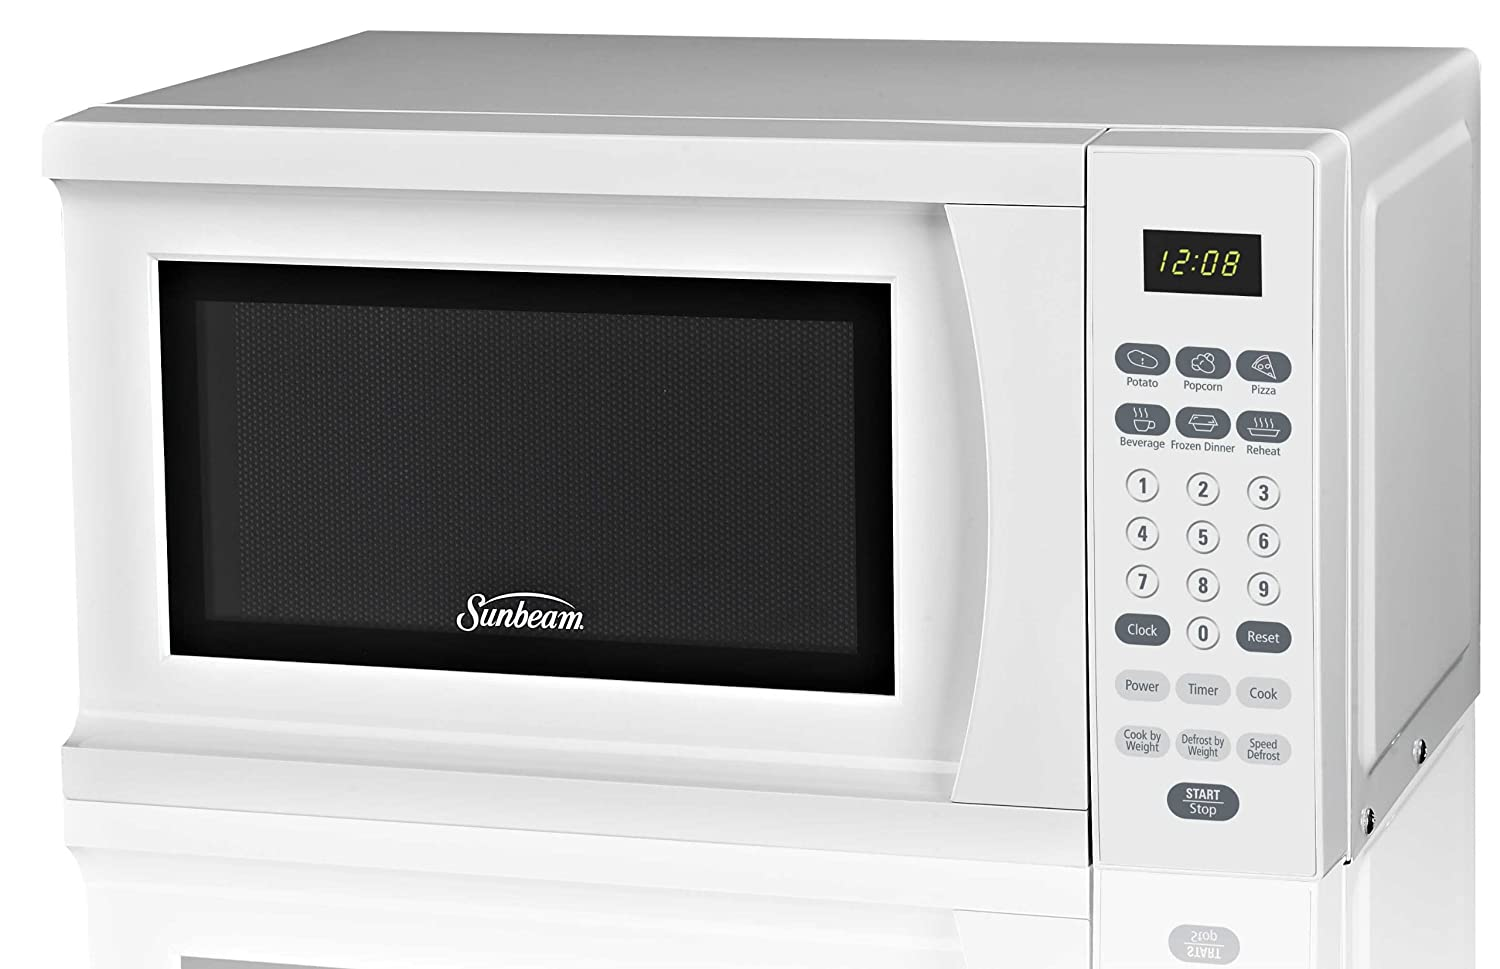 Sunbeam SGS90701W-B 0.7-Cubic Foot Microwave Oven, White